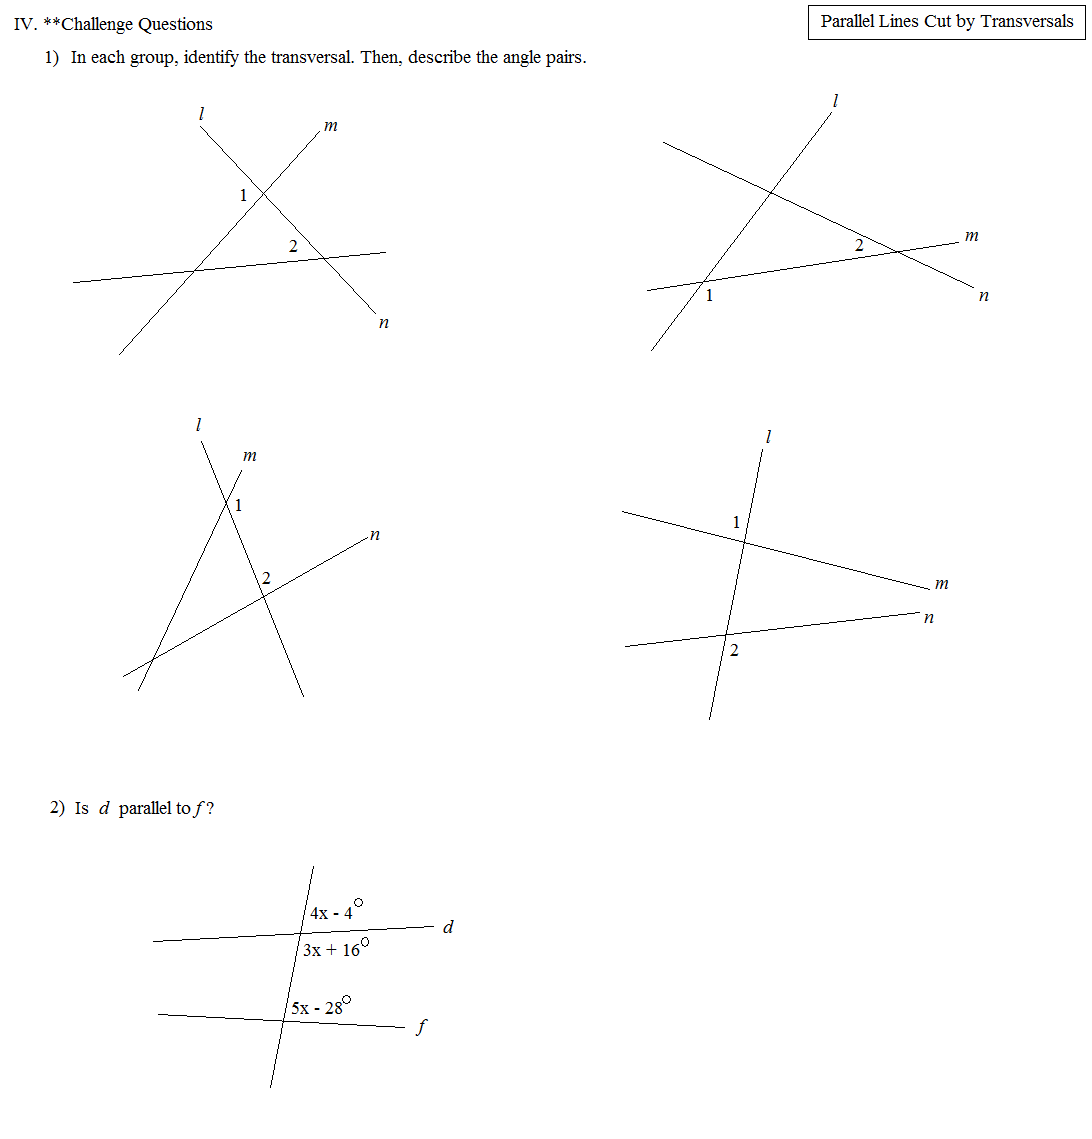 Math Plane - Parallel Lines Cut by Transversals